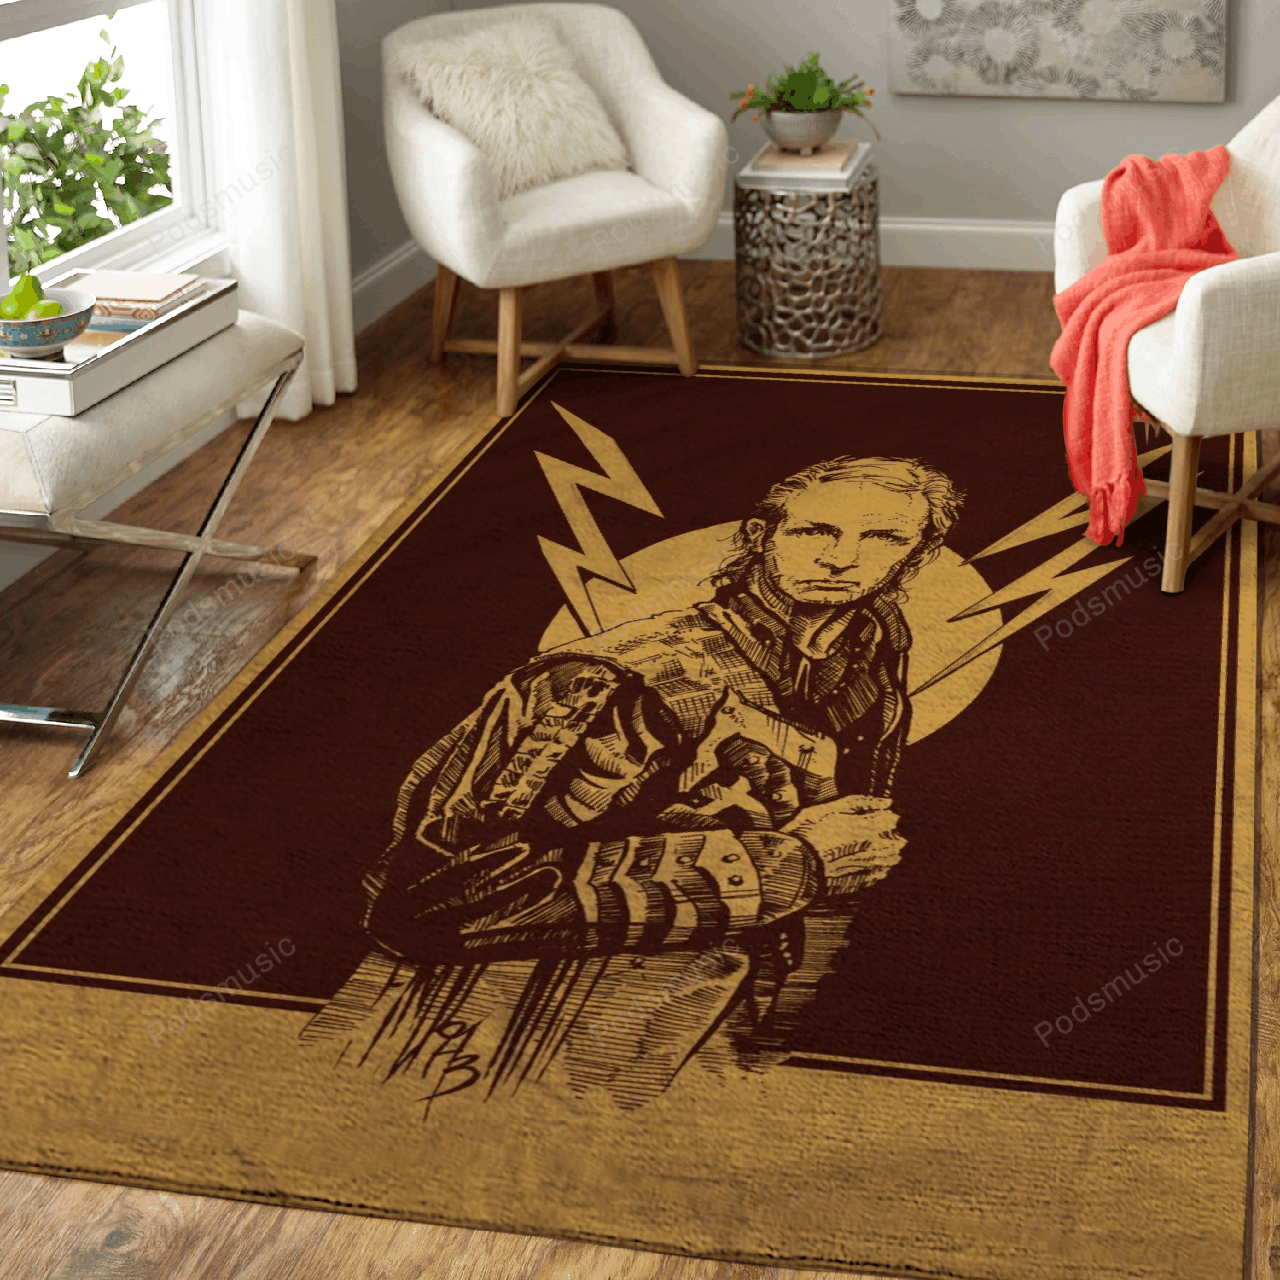 Rob Halford - Music Art For Fans Area Rug Living Room Carpet Floor Decor